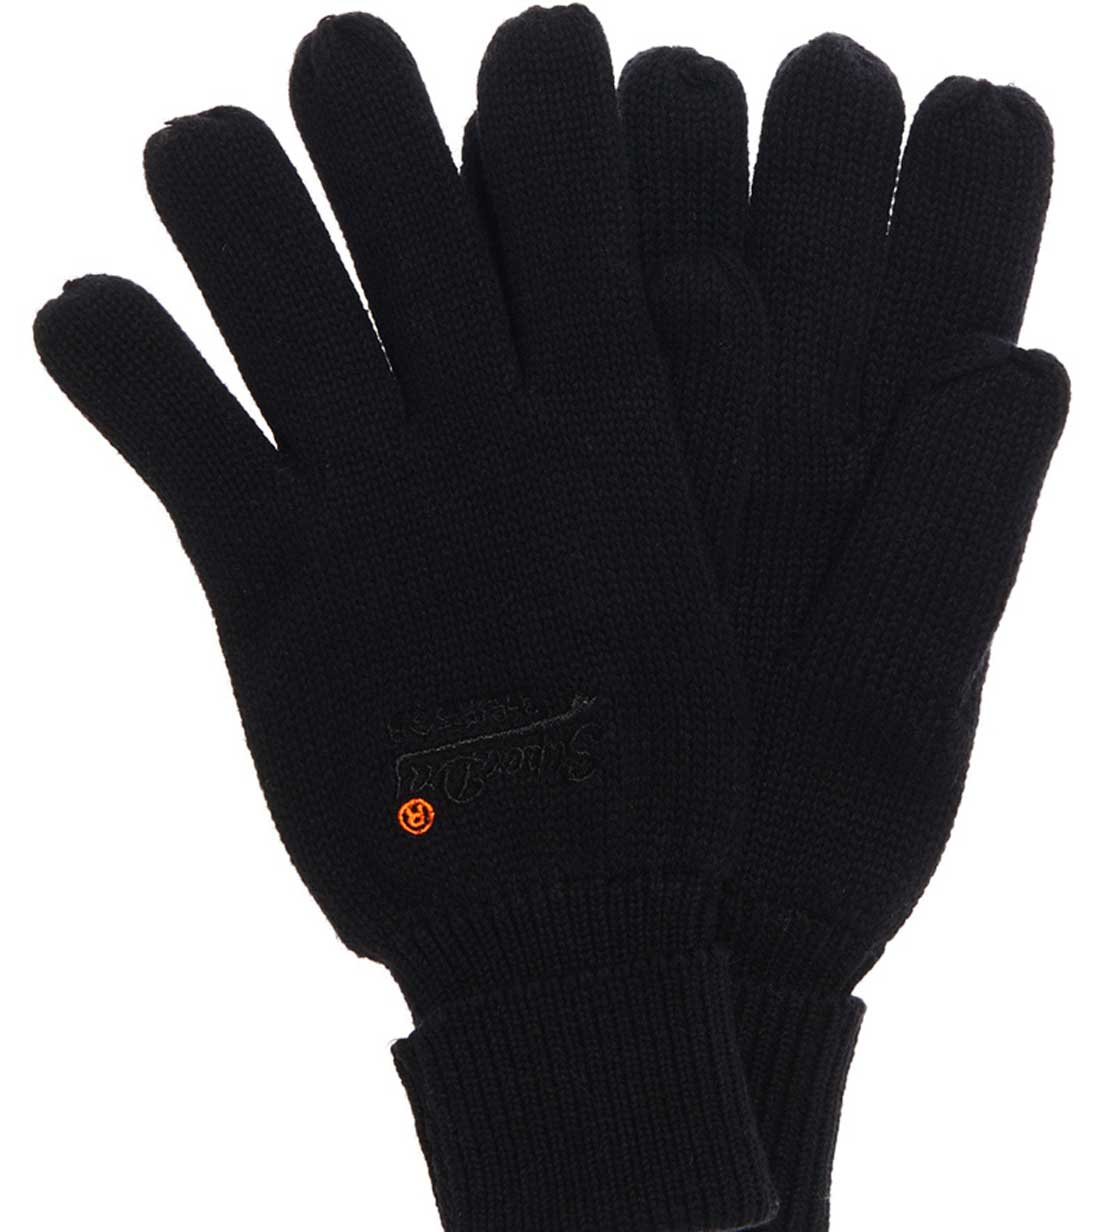 Superdry - M93054LPF2 02A - Orange Label Basic Glove - Black - Γάντια -  black f40b55f3c9a